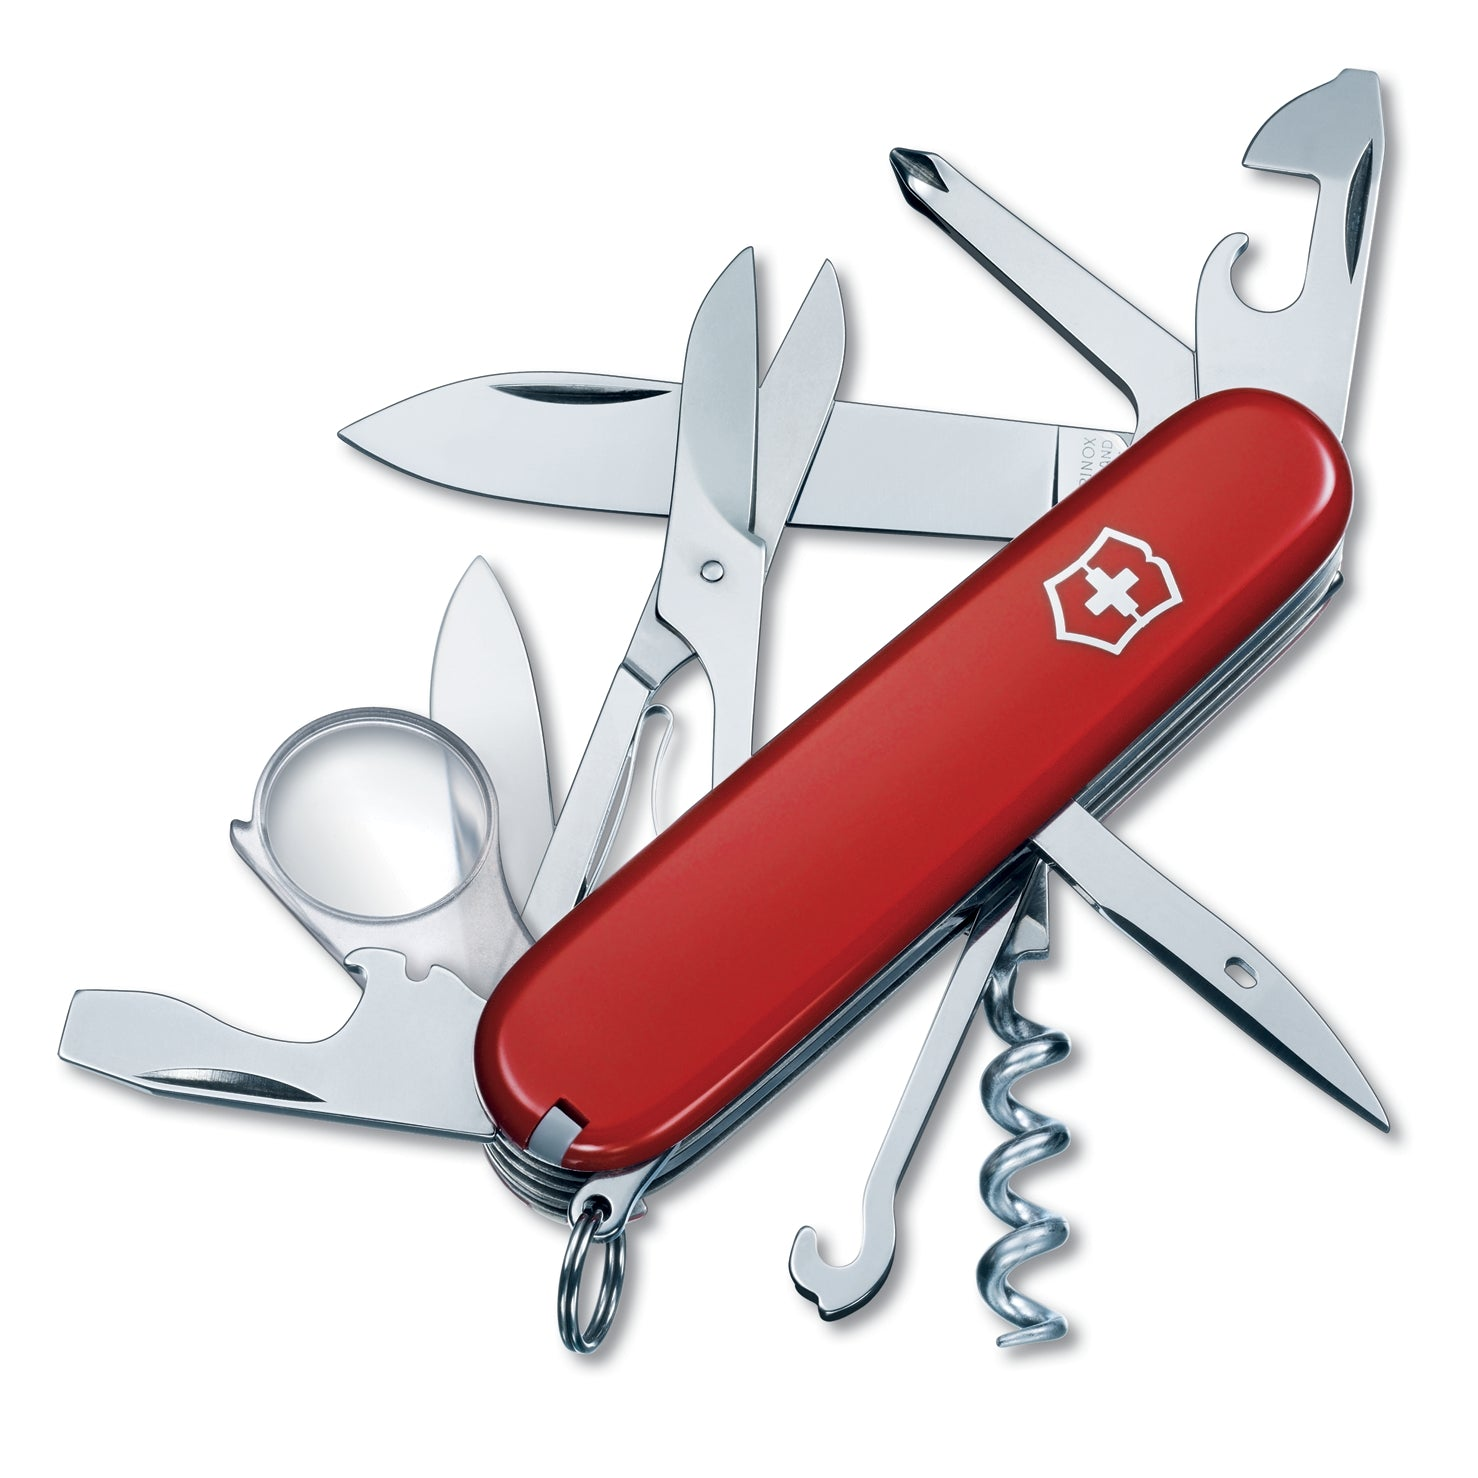 Medium Swiss Army Knives By Victorinox At Swiss Knife Shop